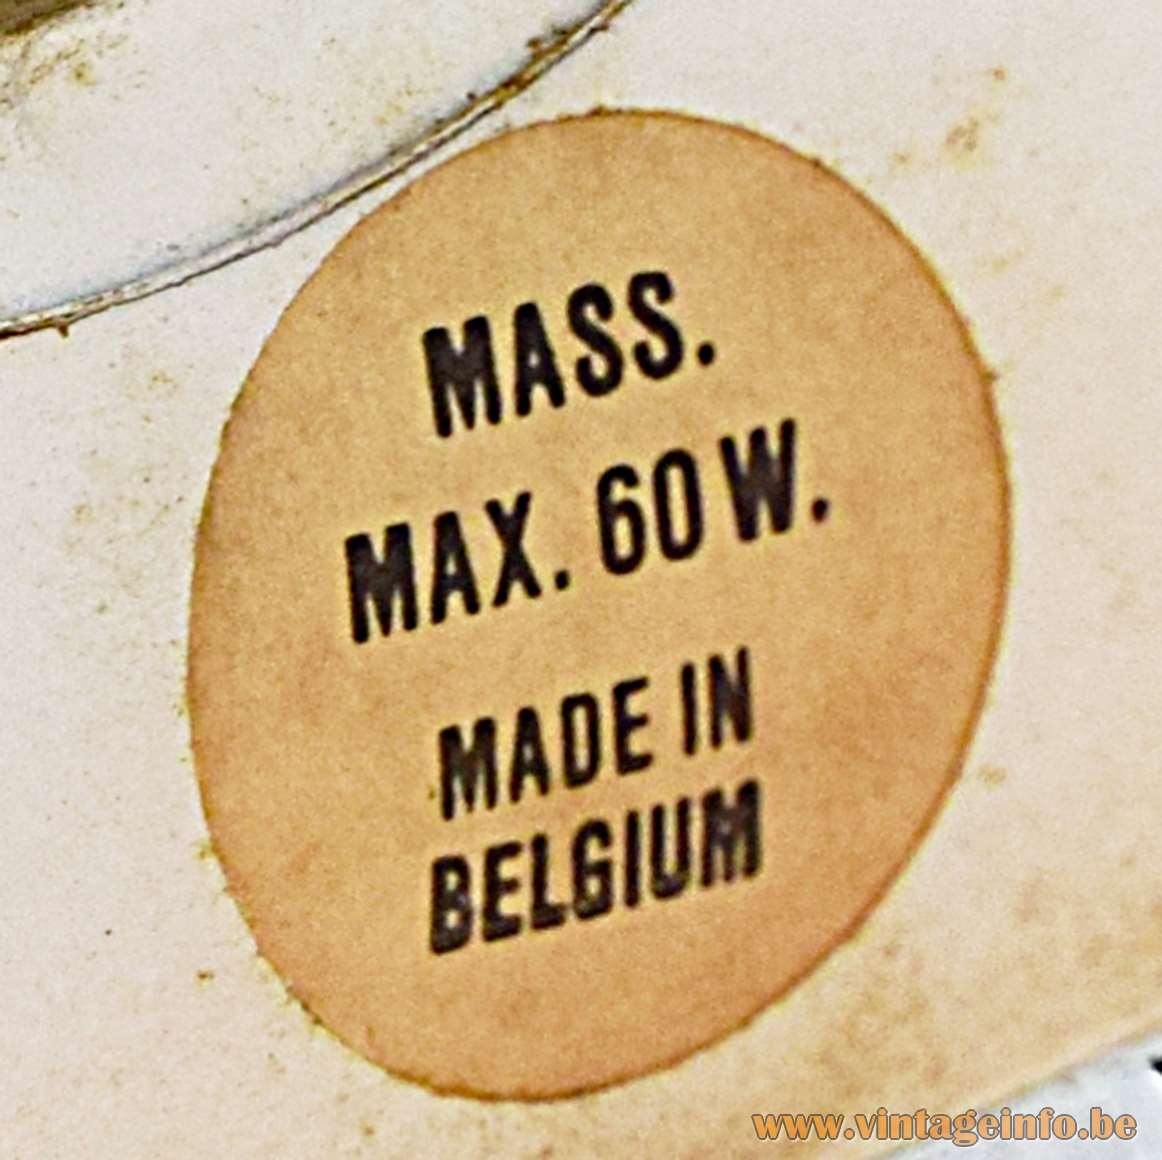 1970s Massive Belgium Label Mass. Max. 60 W. Made In Belgium